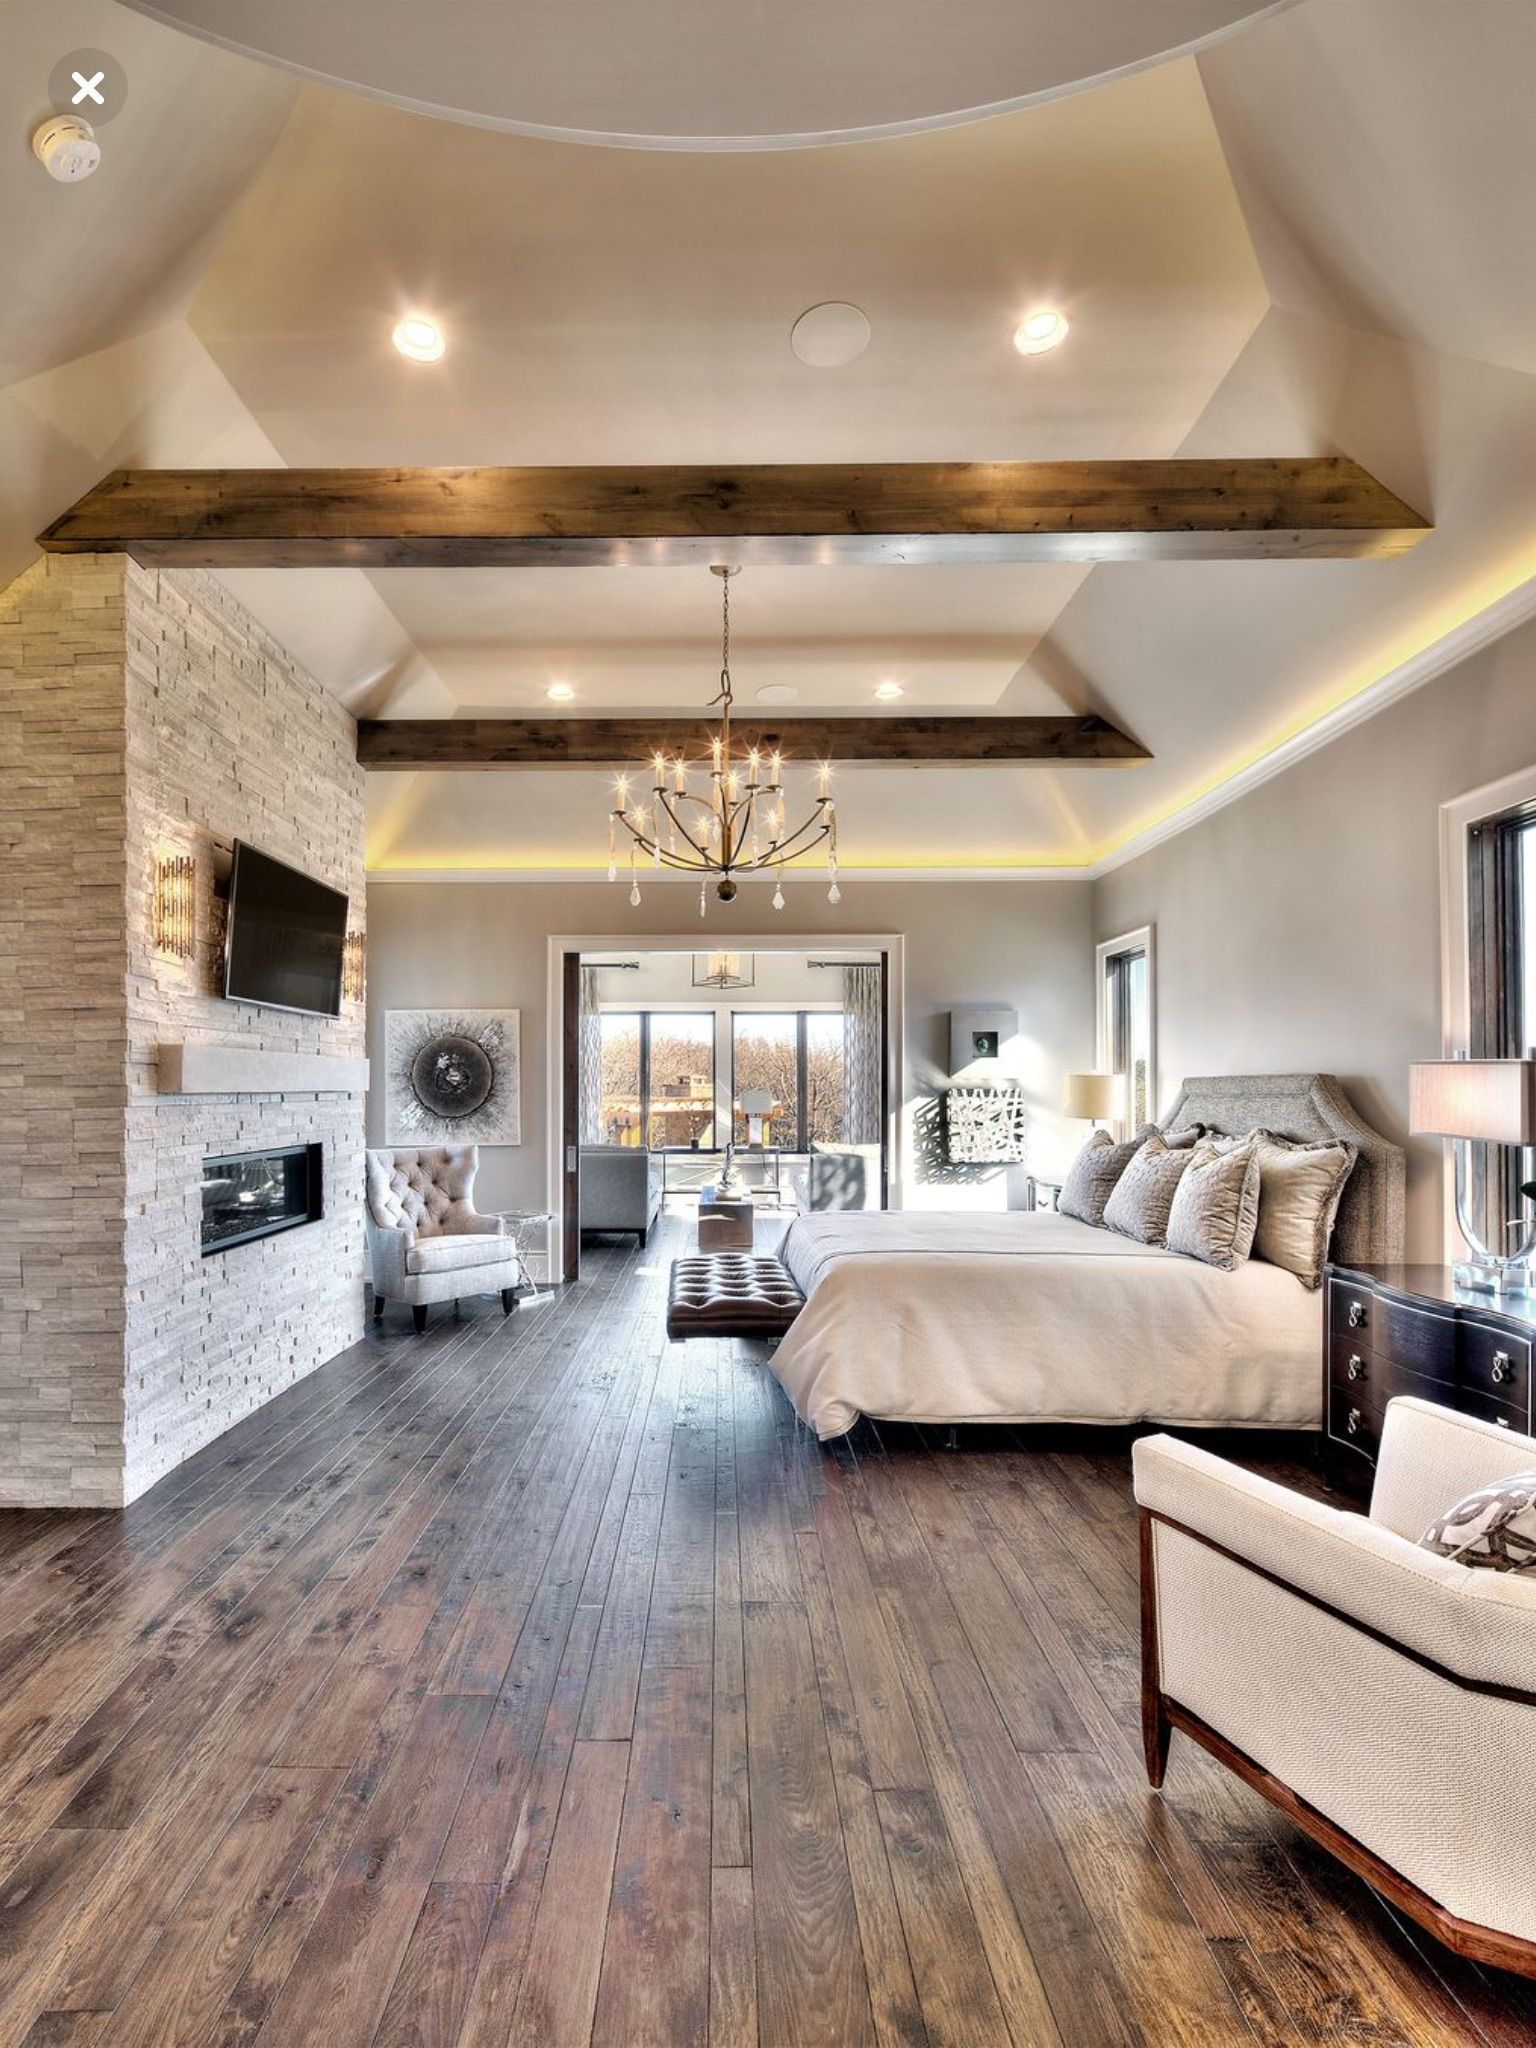 Pin By Bickimer Homes On Model Homes: Pin By Erika Siegert On Home Ideas